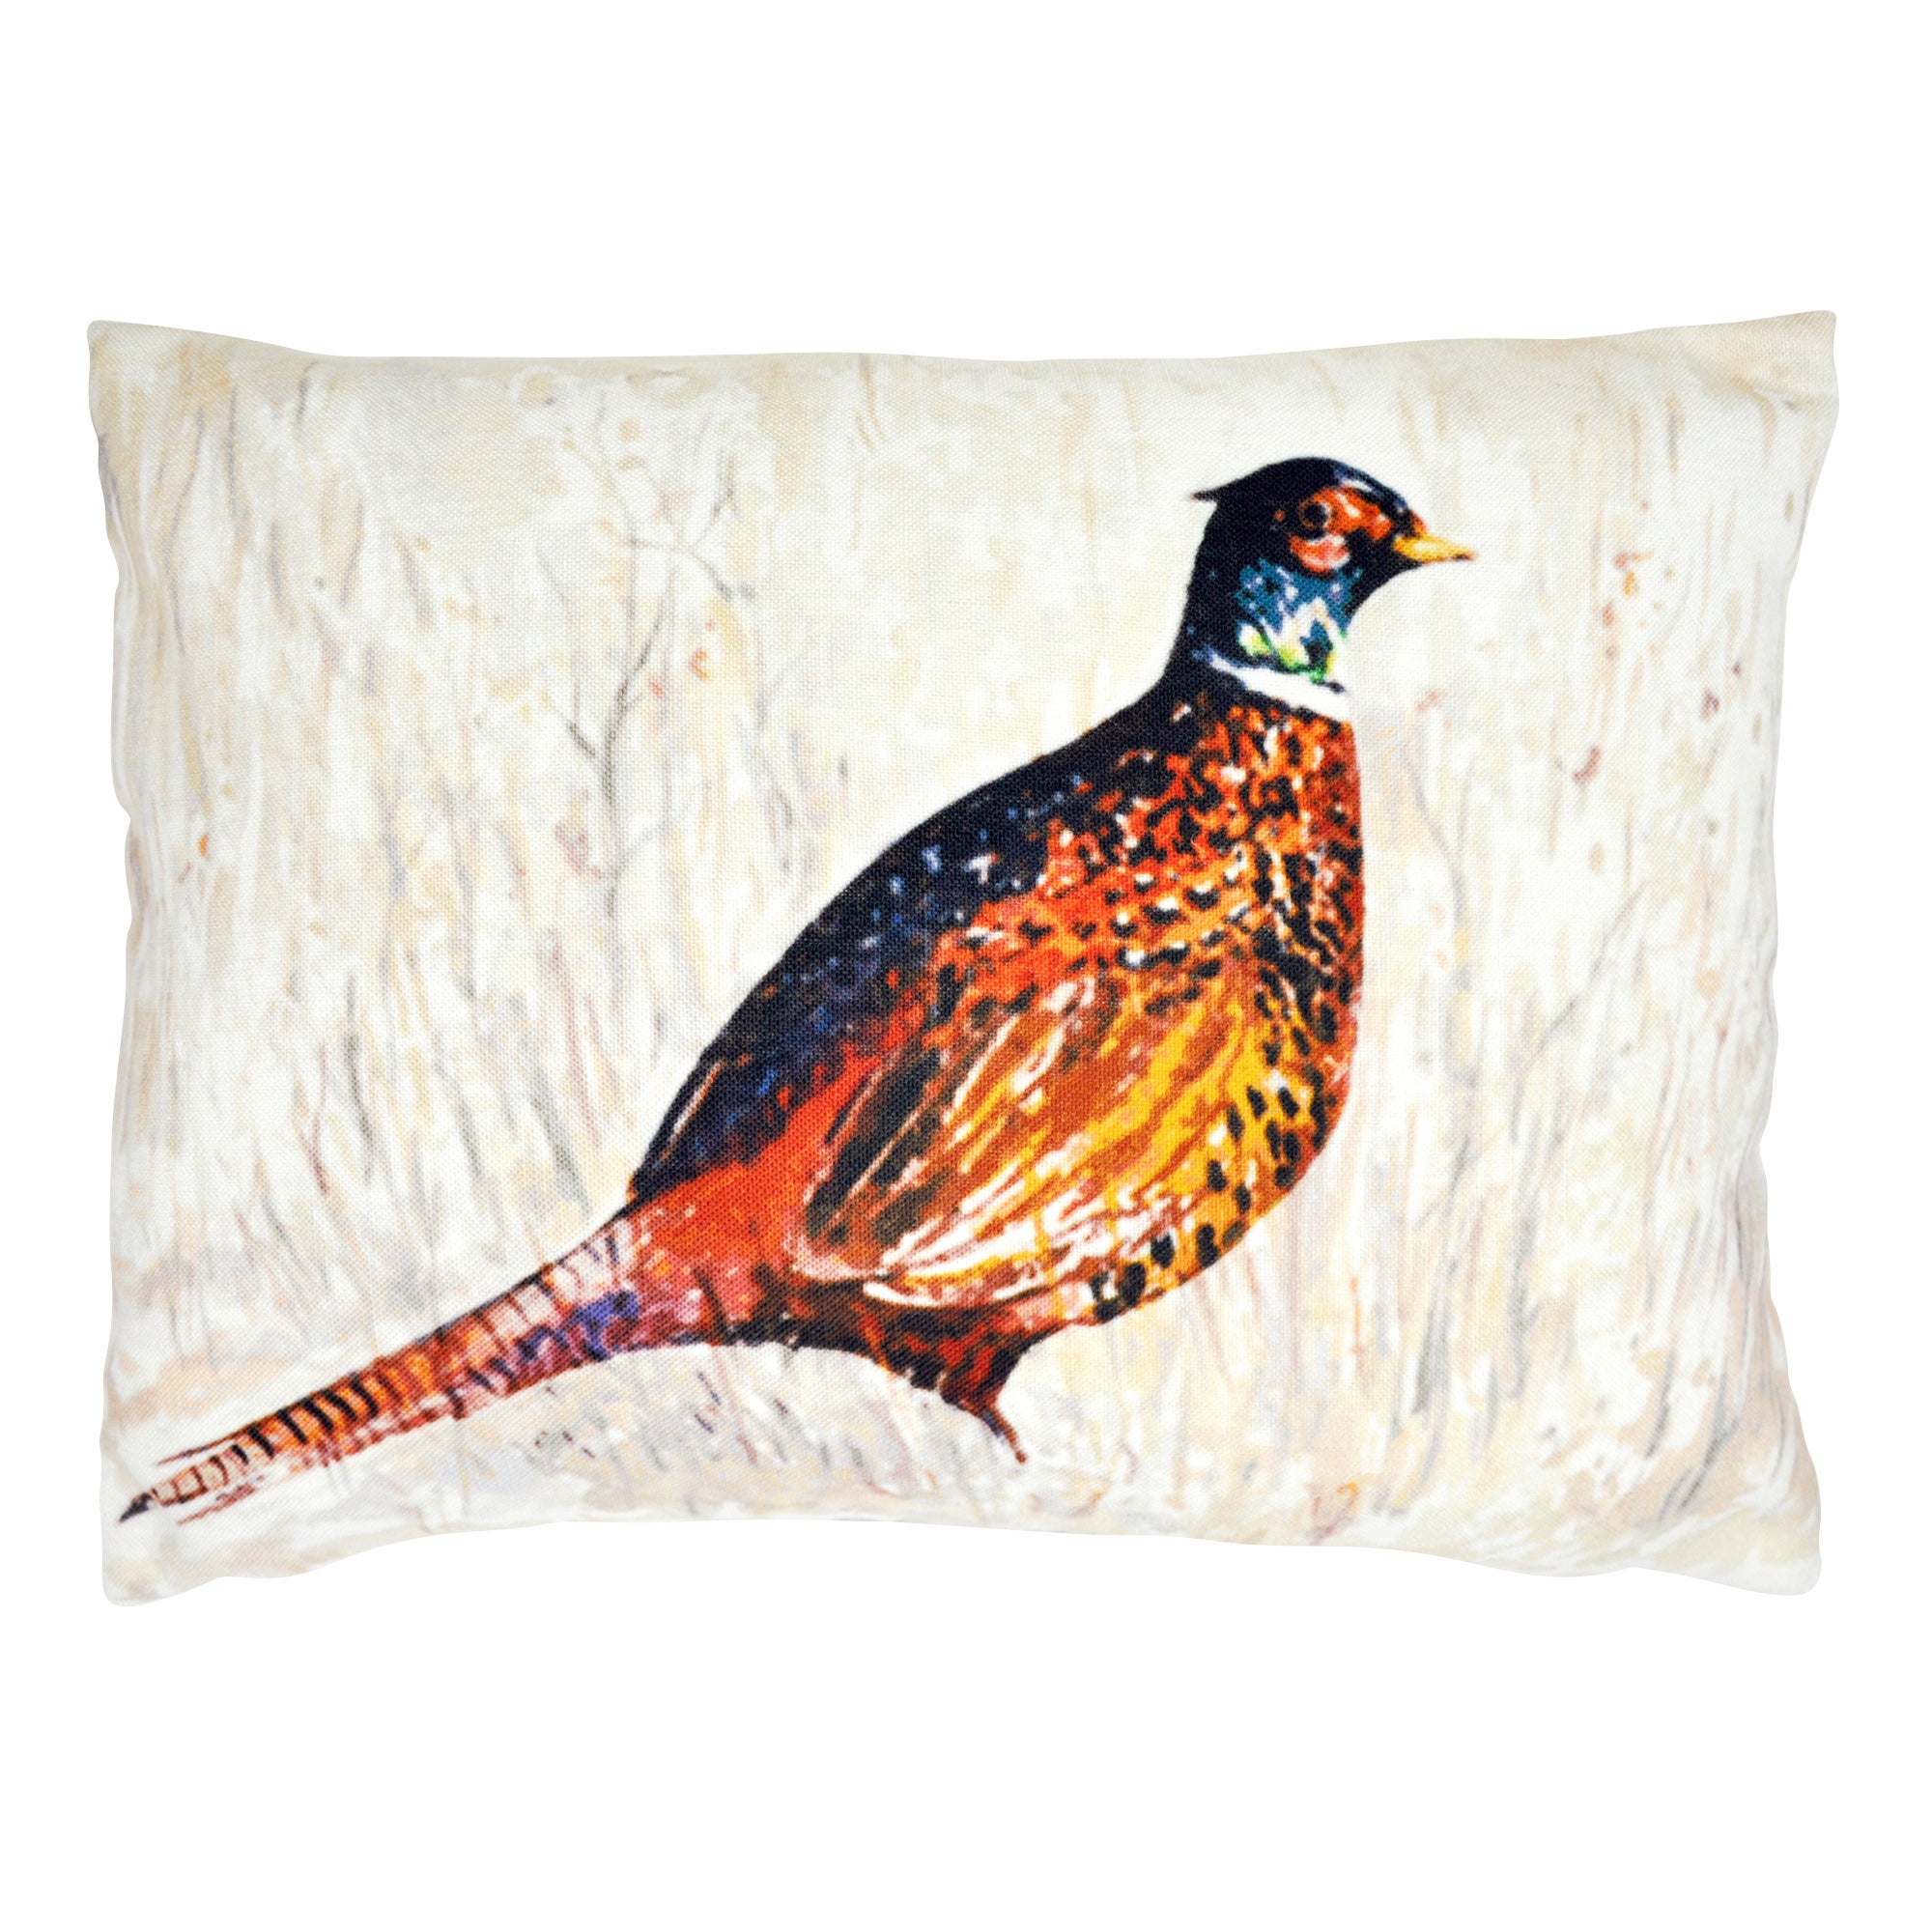 Painted Pheasant Cushion